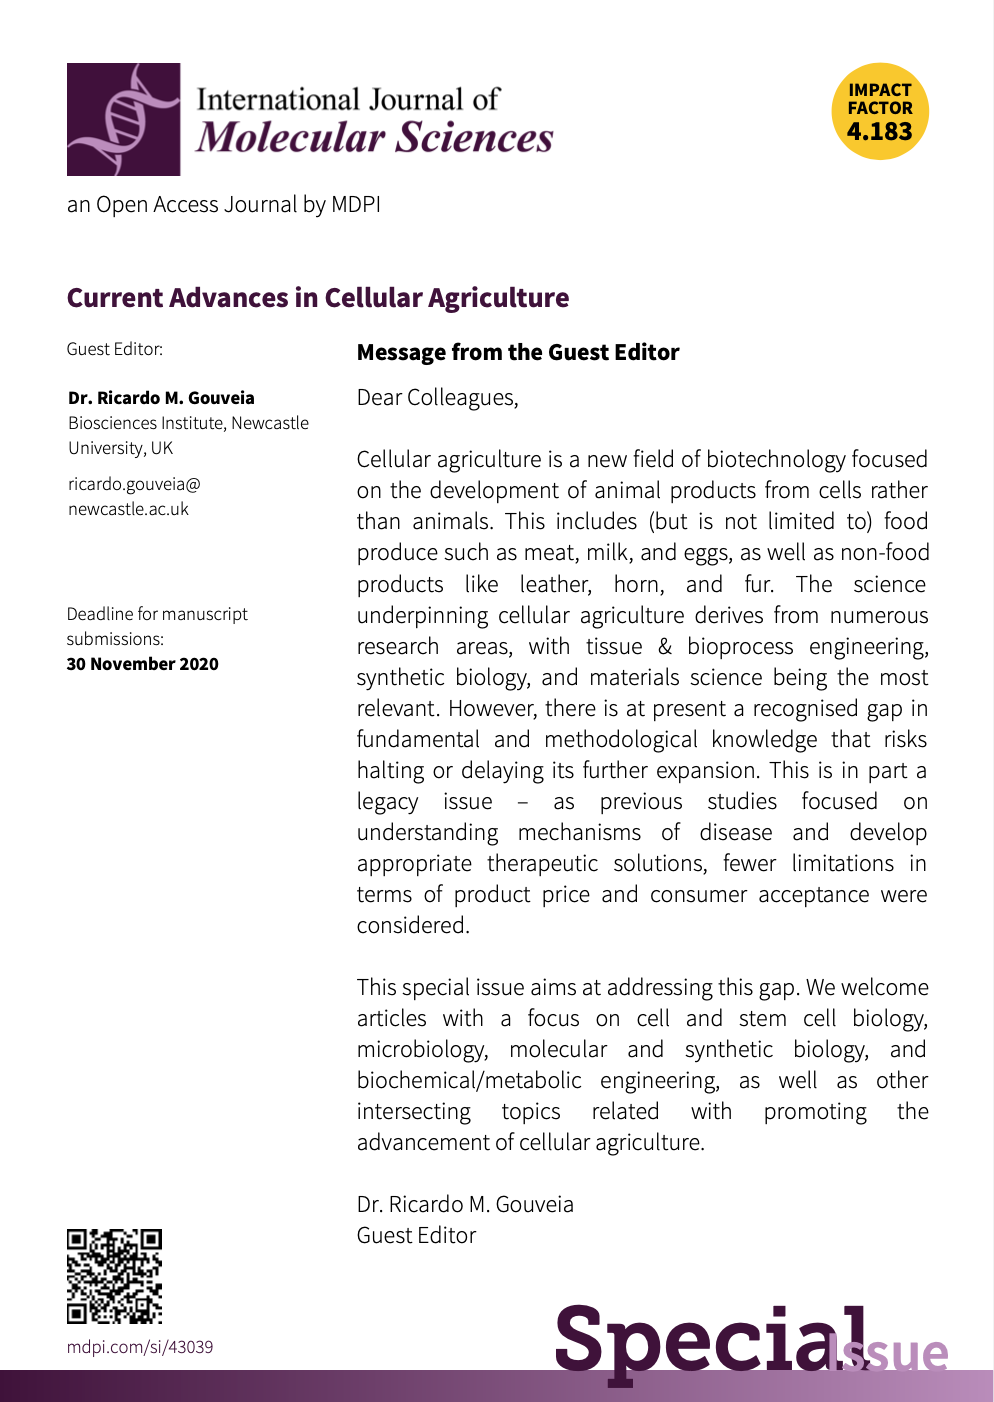 flyer with text: Cellular agriculture is a new field of biotechnology focused on the development of animal products from cells rather than animals. This includes (but is not limited to) food produce such as meat, milk, and eggs, as well as non-food products like leather, horn, and fur. The science underpinning cellular agriculture derives from numerous research areas, with tissue & bioprocess engineering, synthetic biology, and materials science being the most relevant. Indeed, its feasibility is supported by relatively recent scientific and technological advances in these areas, particularly aiming the development of new biotherapeutics, biopharmaceutics, and bioartificial transplants. The rapid growth of cellular agriculture has also been driven by the increased perception of mounting impacts from intensive animal farming, namely on human health, animal welfare, and the environment. However, and despite considerable investment in industries of the field, there is at present a recognised gap in fundamental and methodological knowledge that risks halting or delaying its further expansion. This is in part a legacy issue – as previous studies focused on understanding mechanisms of disease and develop appropriate therapeutic solutions, fewer limitations in terms of product price and consumer acceptance were considered. This special issue therefore aims at addressing this gap. We welcome articles with a strong focus on cell and stem cell biology, microbiology, molecular and synthetic biology, and biochemical/metabolic engineering, as well as other intersecting topics related with promoting the advancement of cellular agriculture.